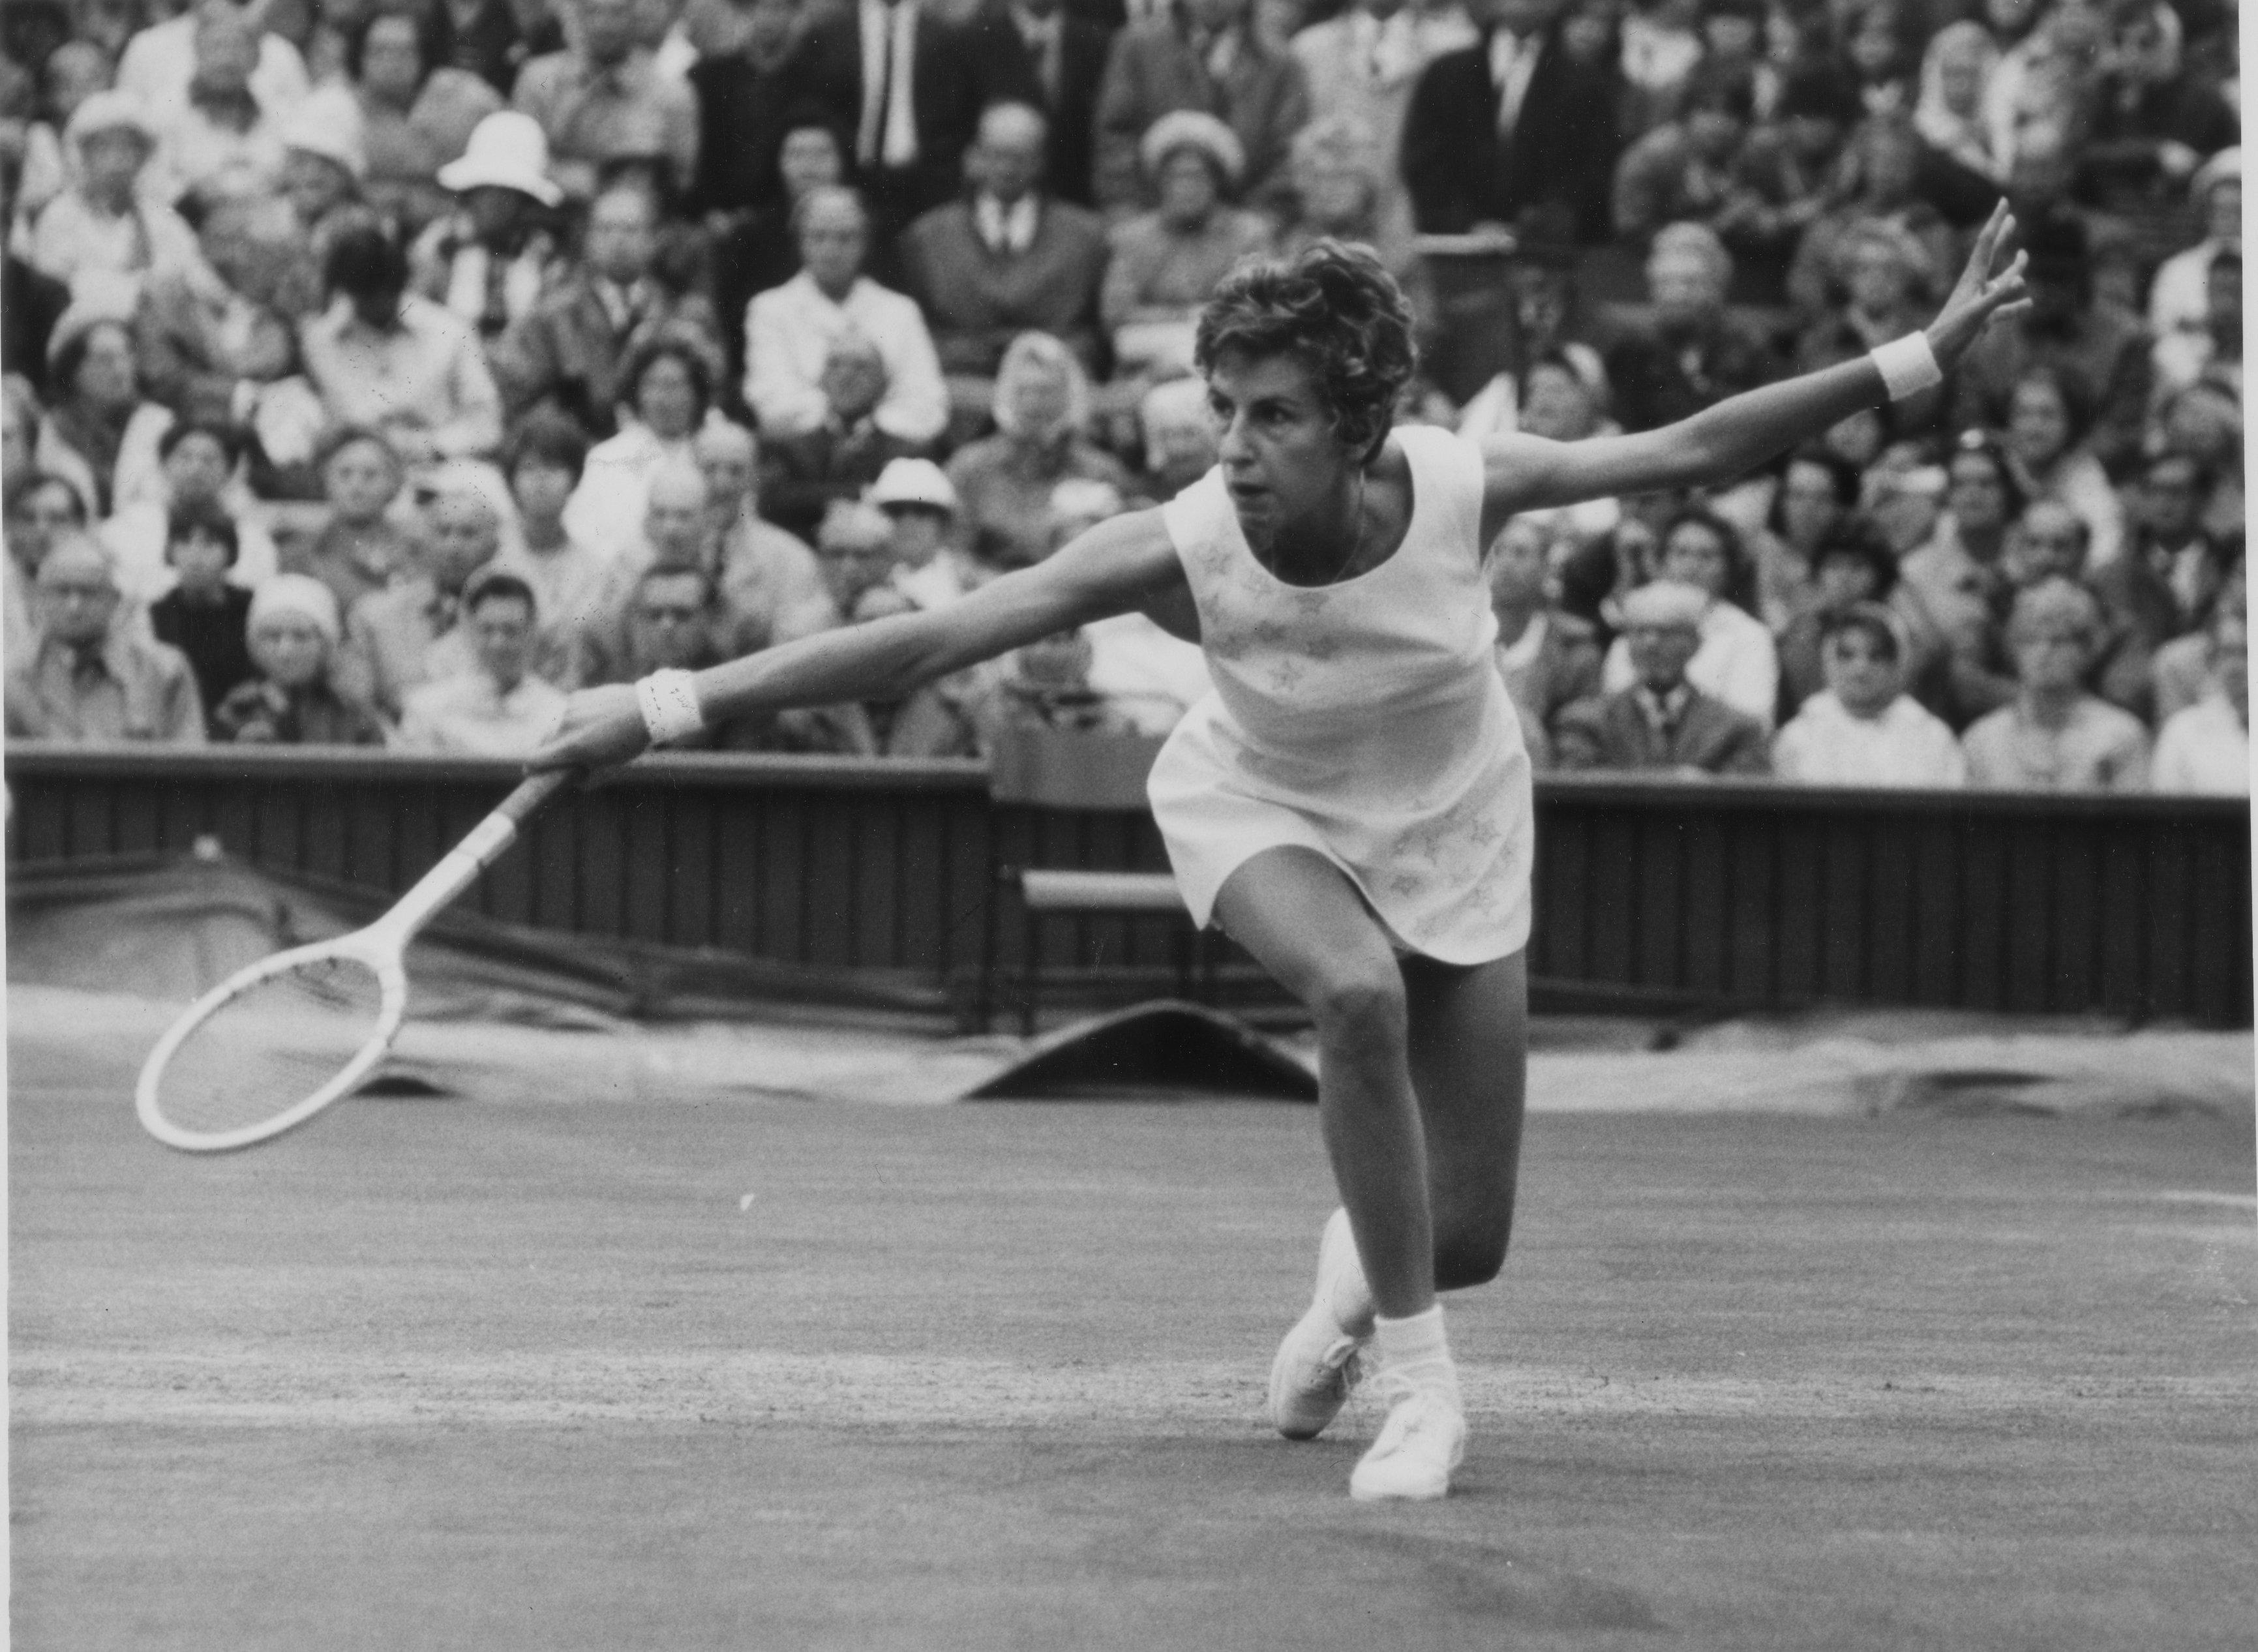 Maria Bueno is the most successful South American tennis player of all-time, with 19 Grand Slam titles